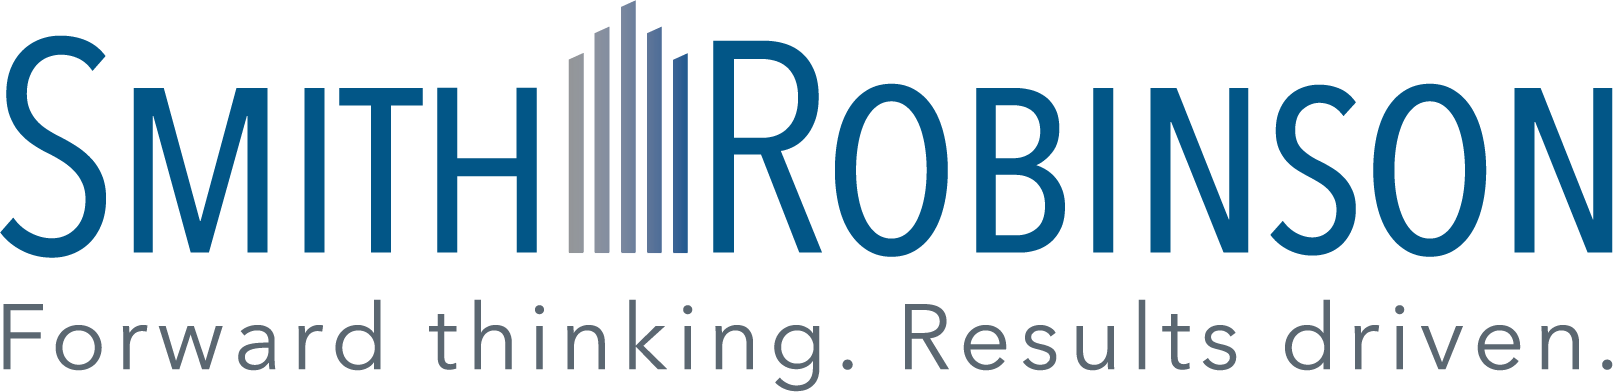 Smith Robinson logo